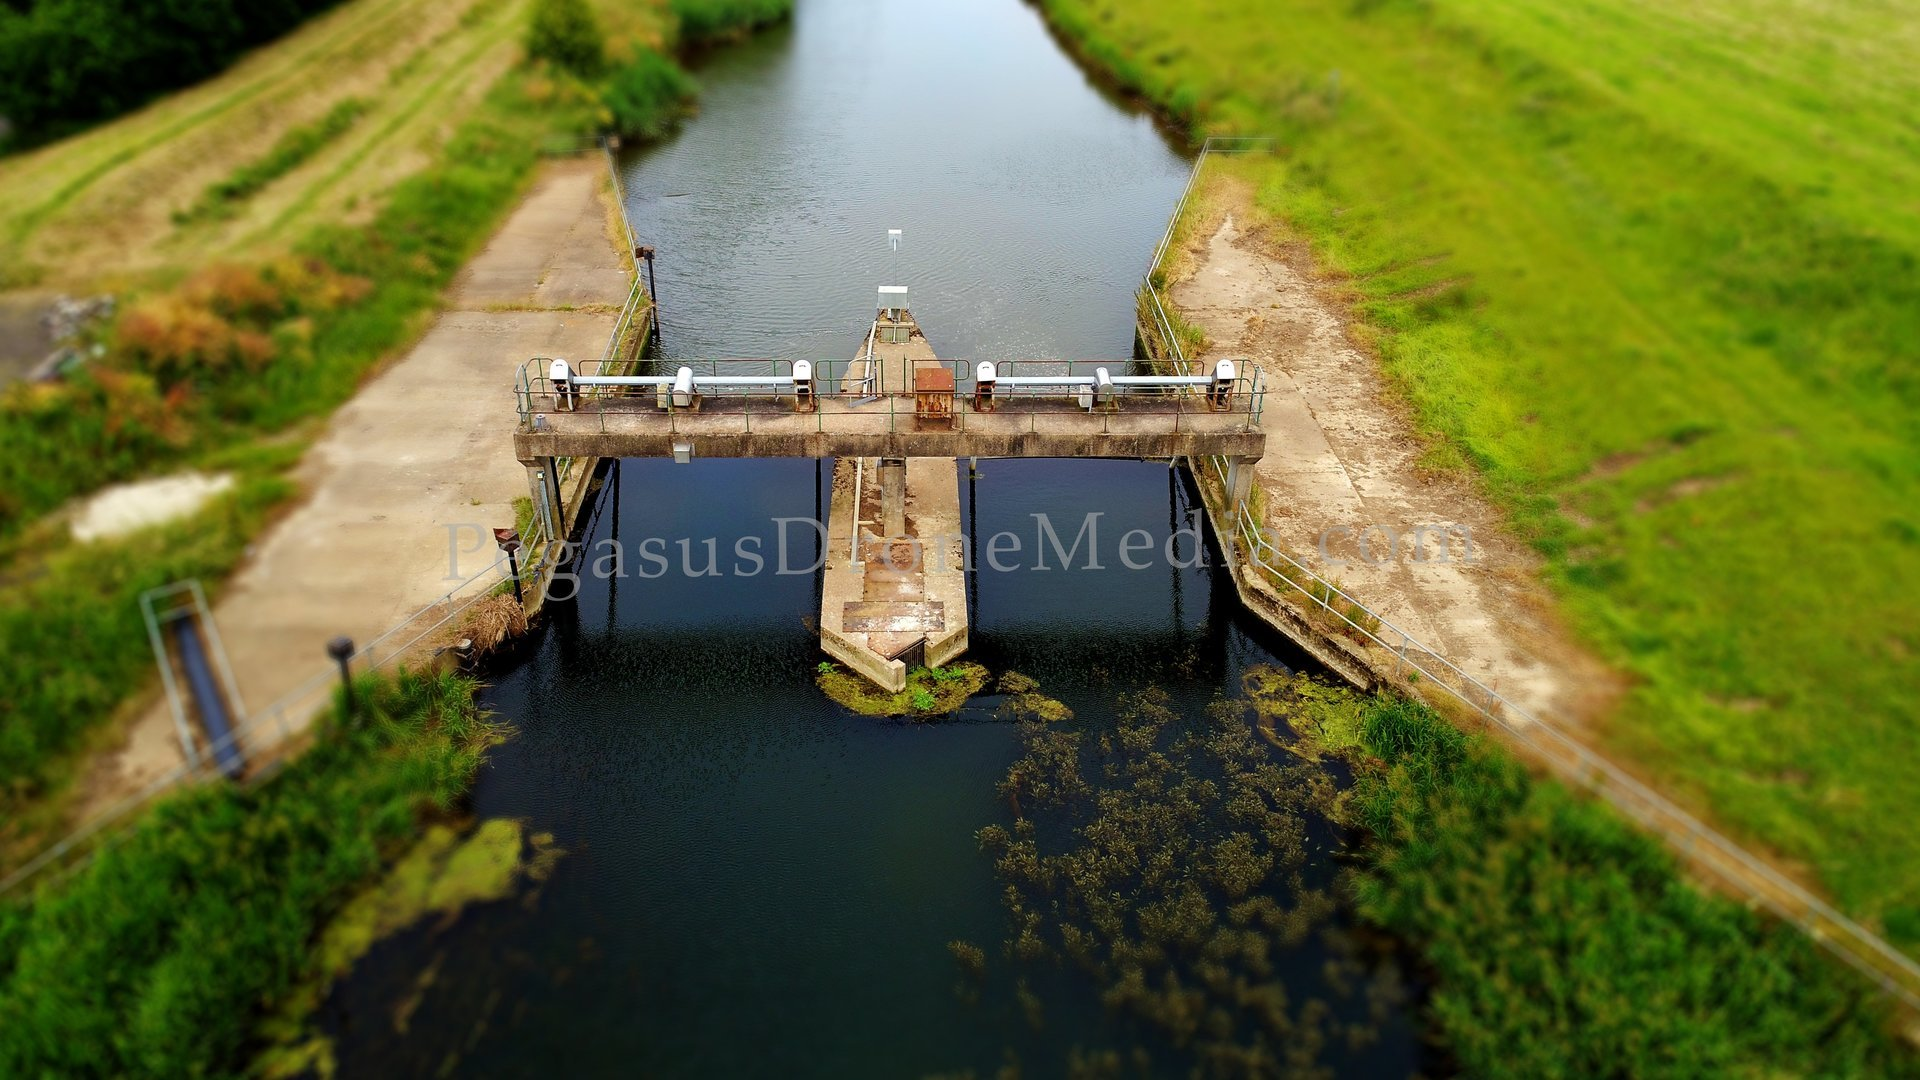 Tetney Lock aerial view 1 from drone